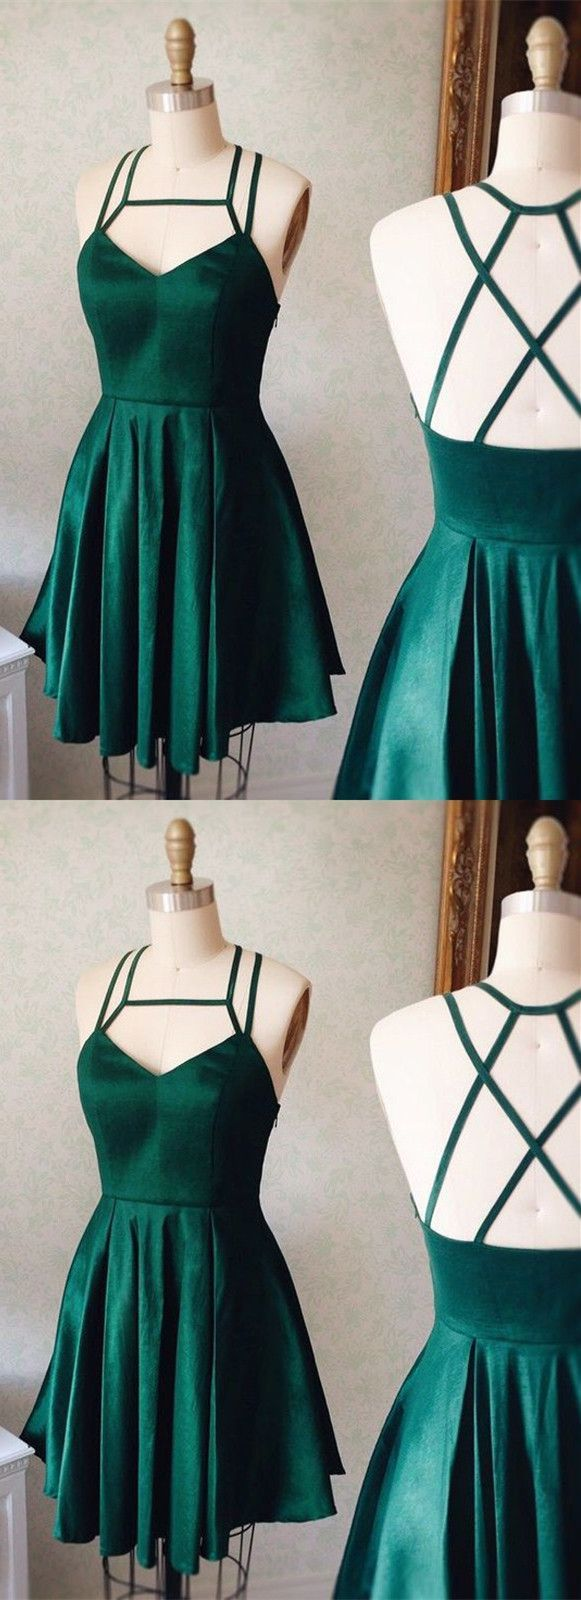 criss-cross back party dresses, cute green homecoming dreses, short semi formal dresses cute outfits for girls 2017